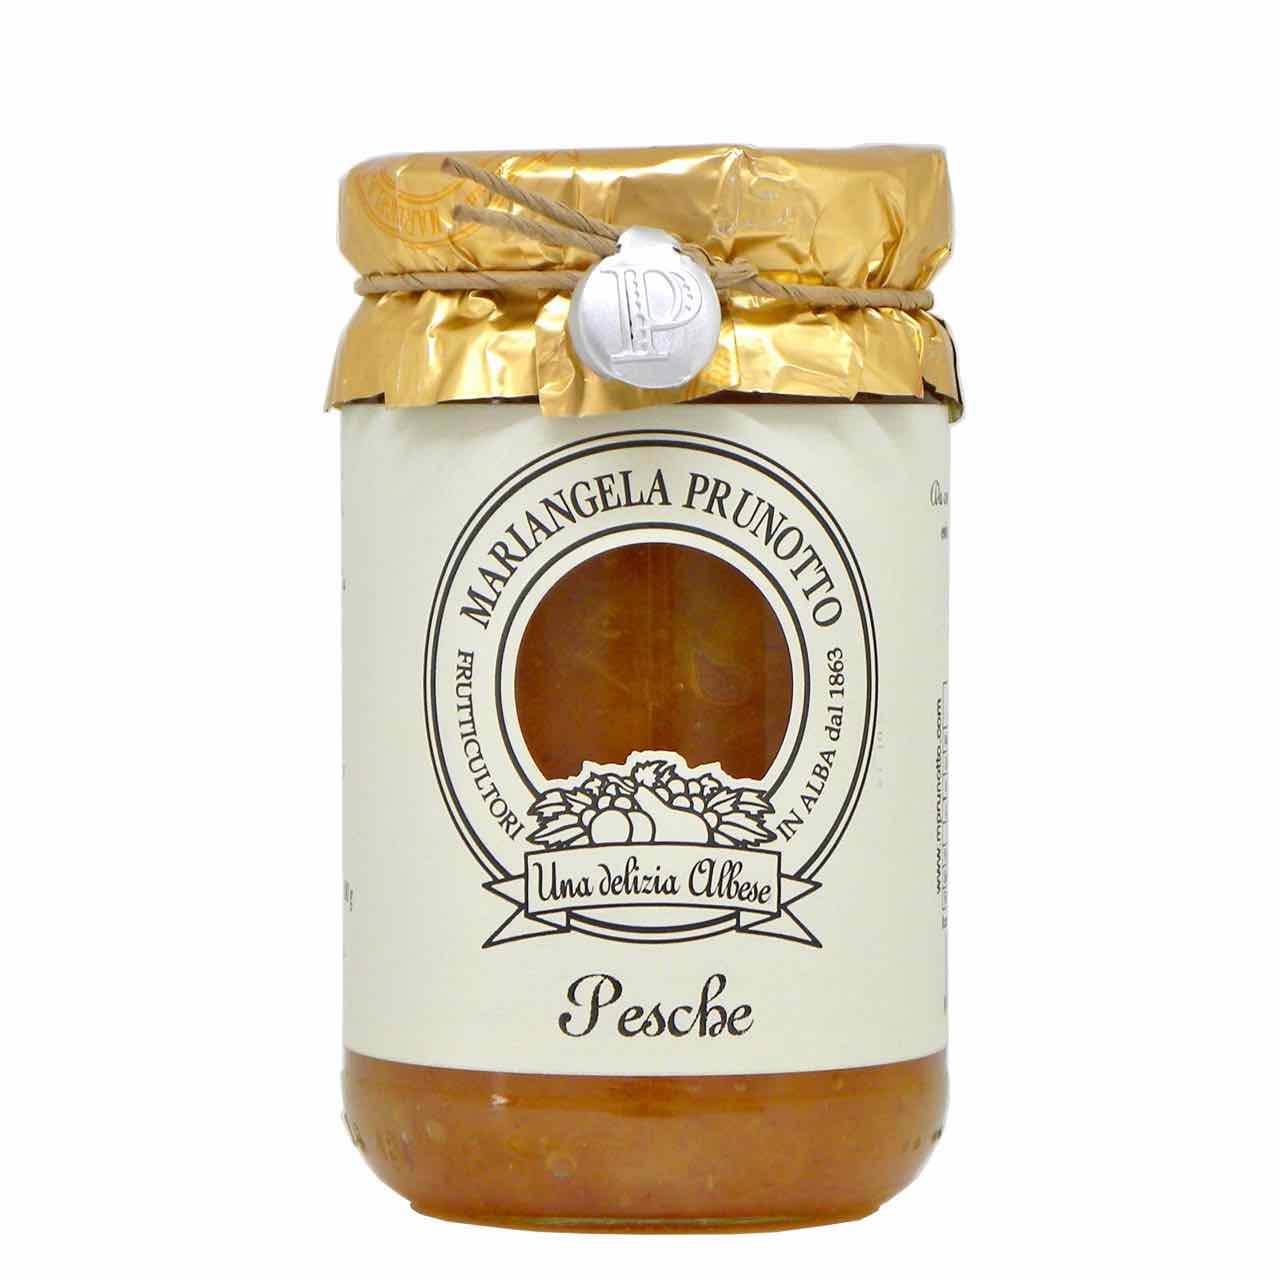 peach preserve with cane sugar – best Italian food – Gustorotondo online food shop – authentic Italian artisan food online